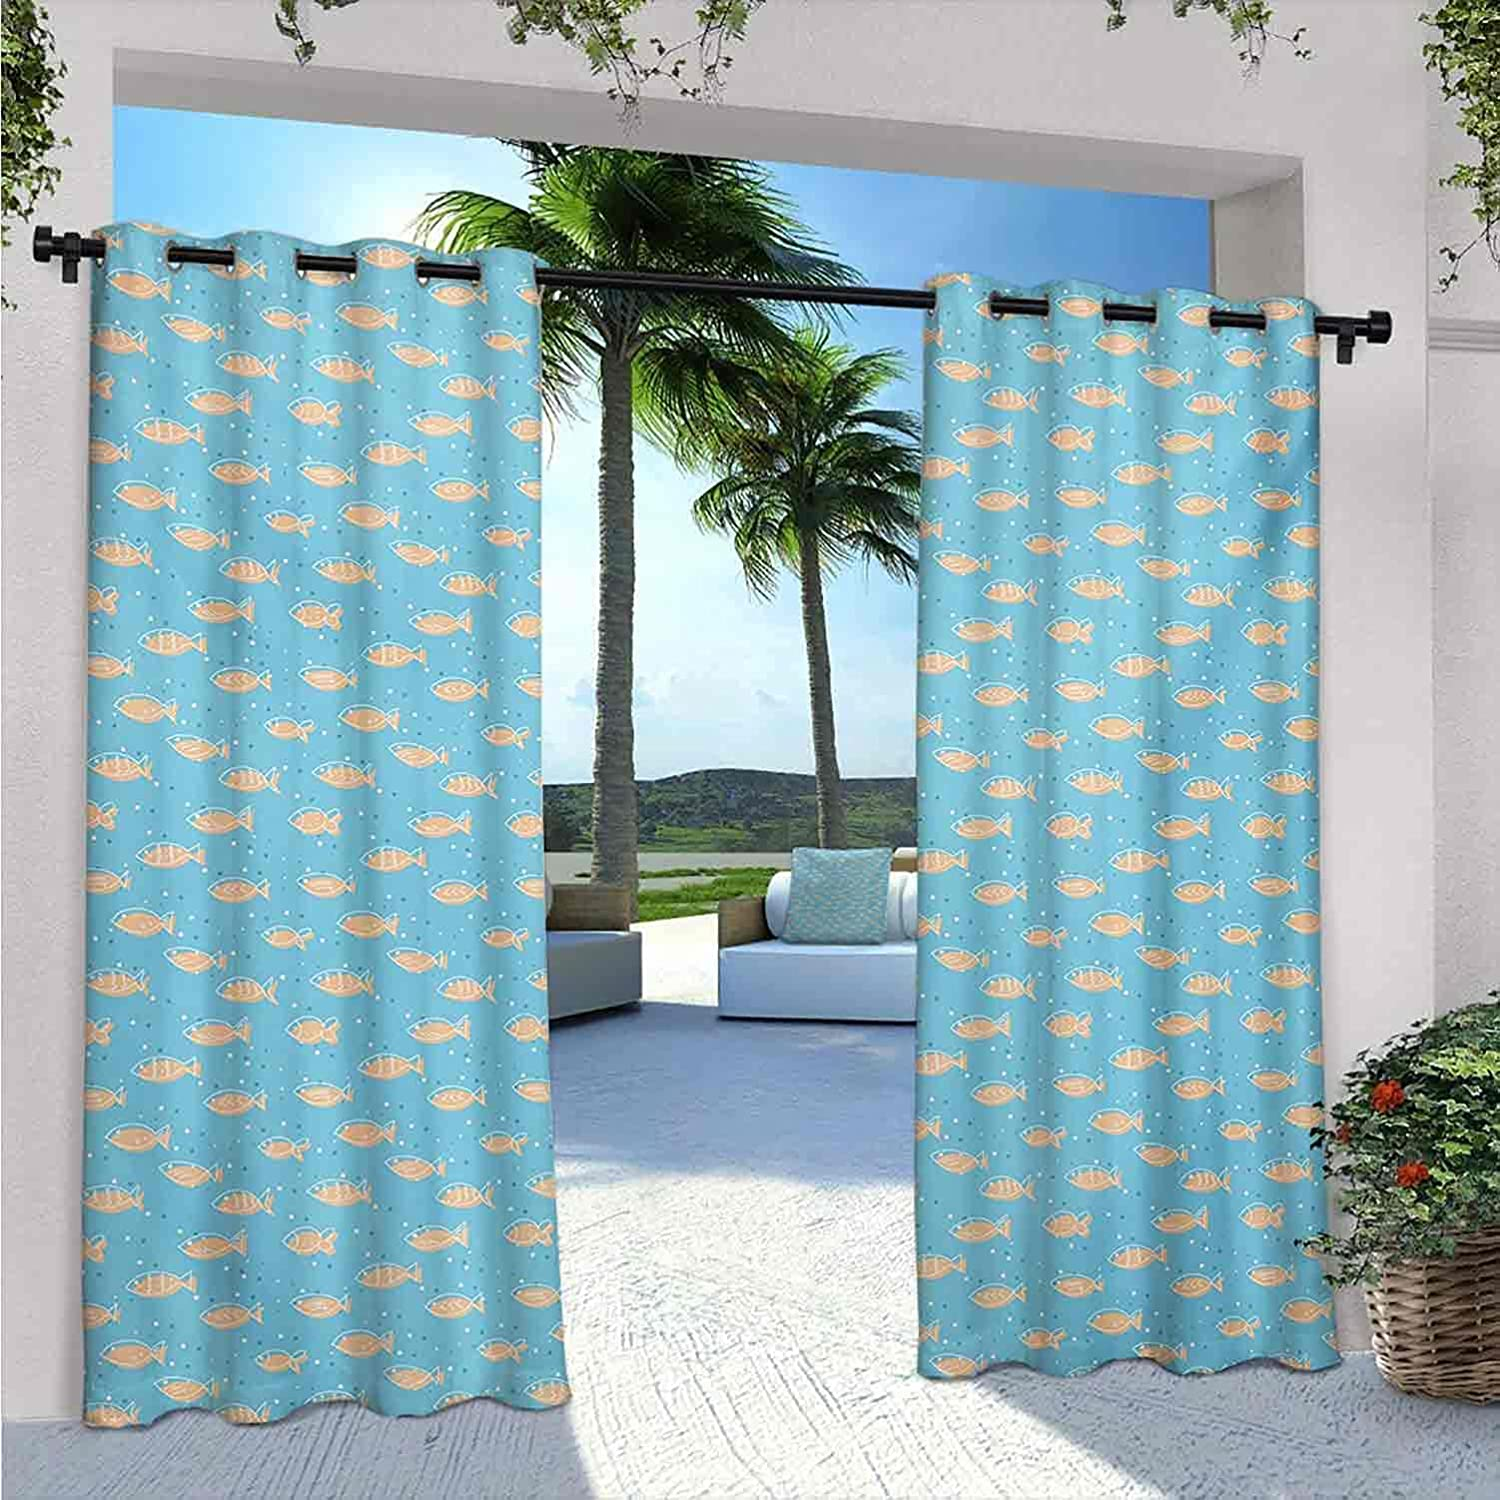 A surprise price is realized Fish Waterproof Indoor Outdoor Indianapolis Mall Curtains for Flock Patio of Sw